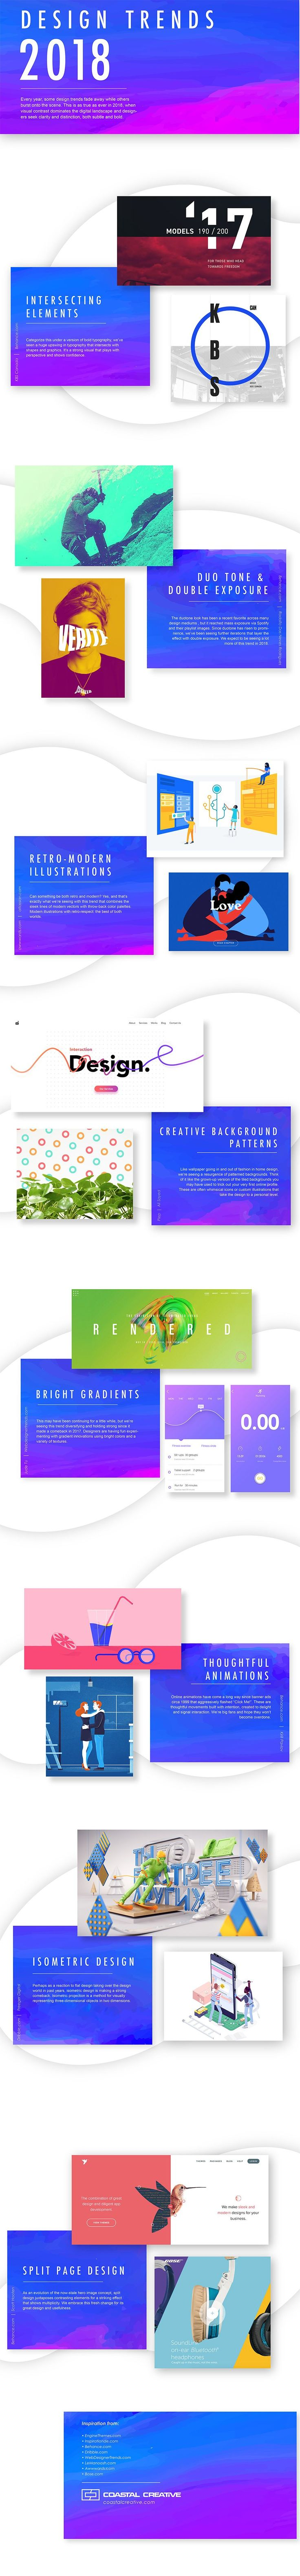 8 Web & Graphic Design Trends That Will Rock 2018 [Infographic] - http://topseosoft.com/8-web-graphic-design-trends-that-will-rock-2018-infographic/